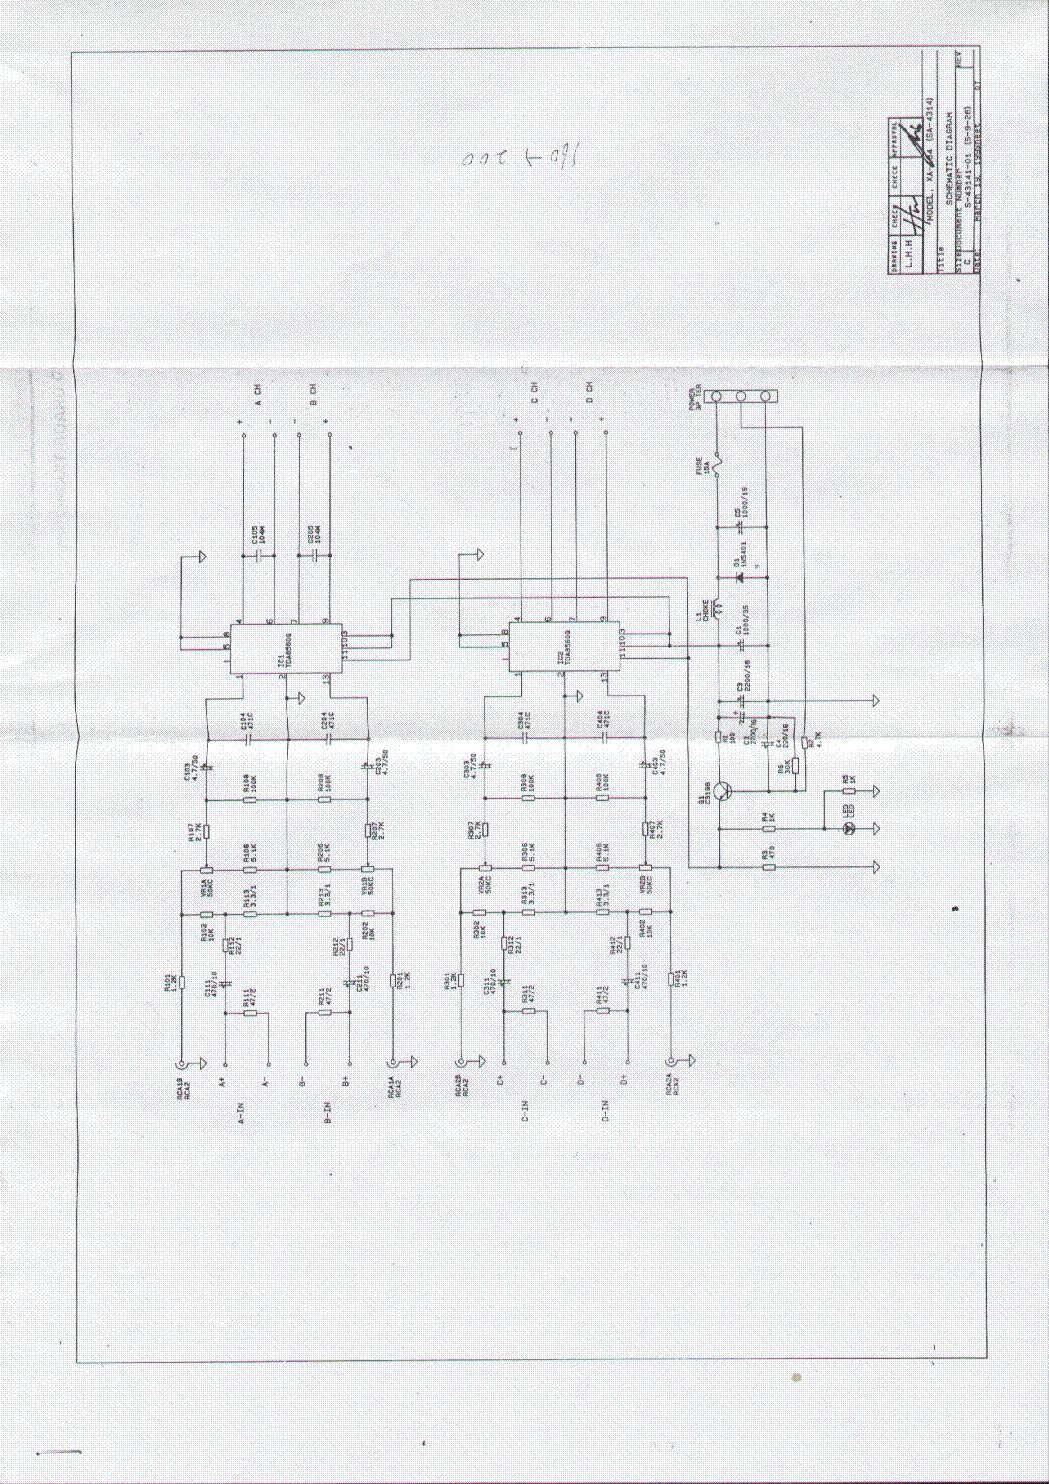 jensen car audio wiring diagram